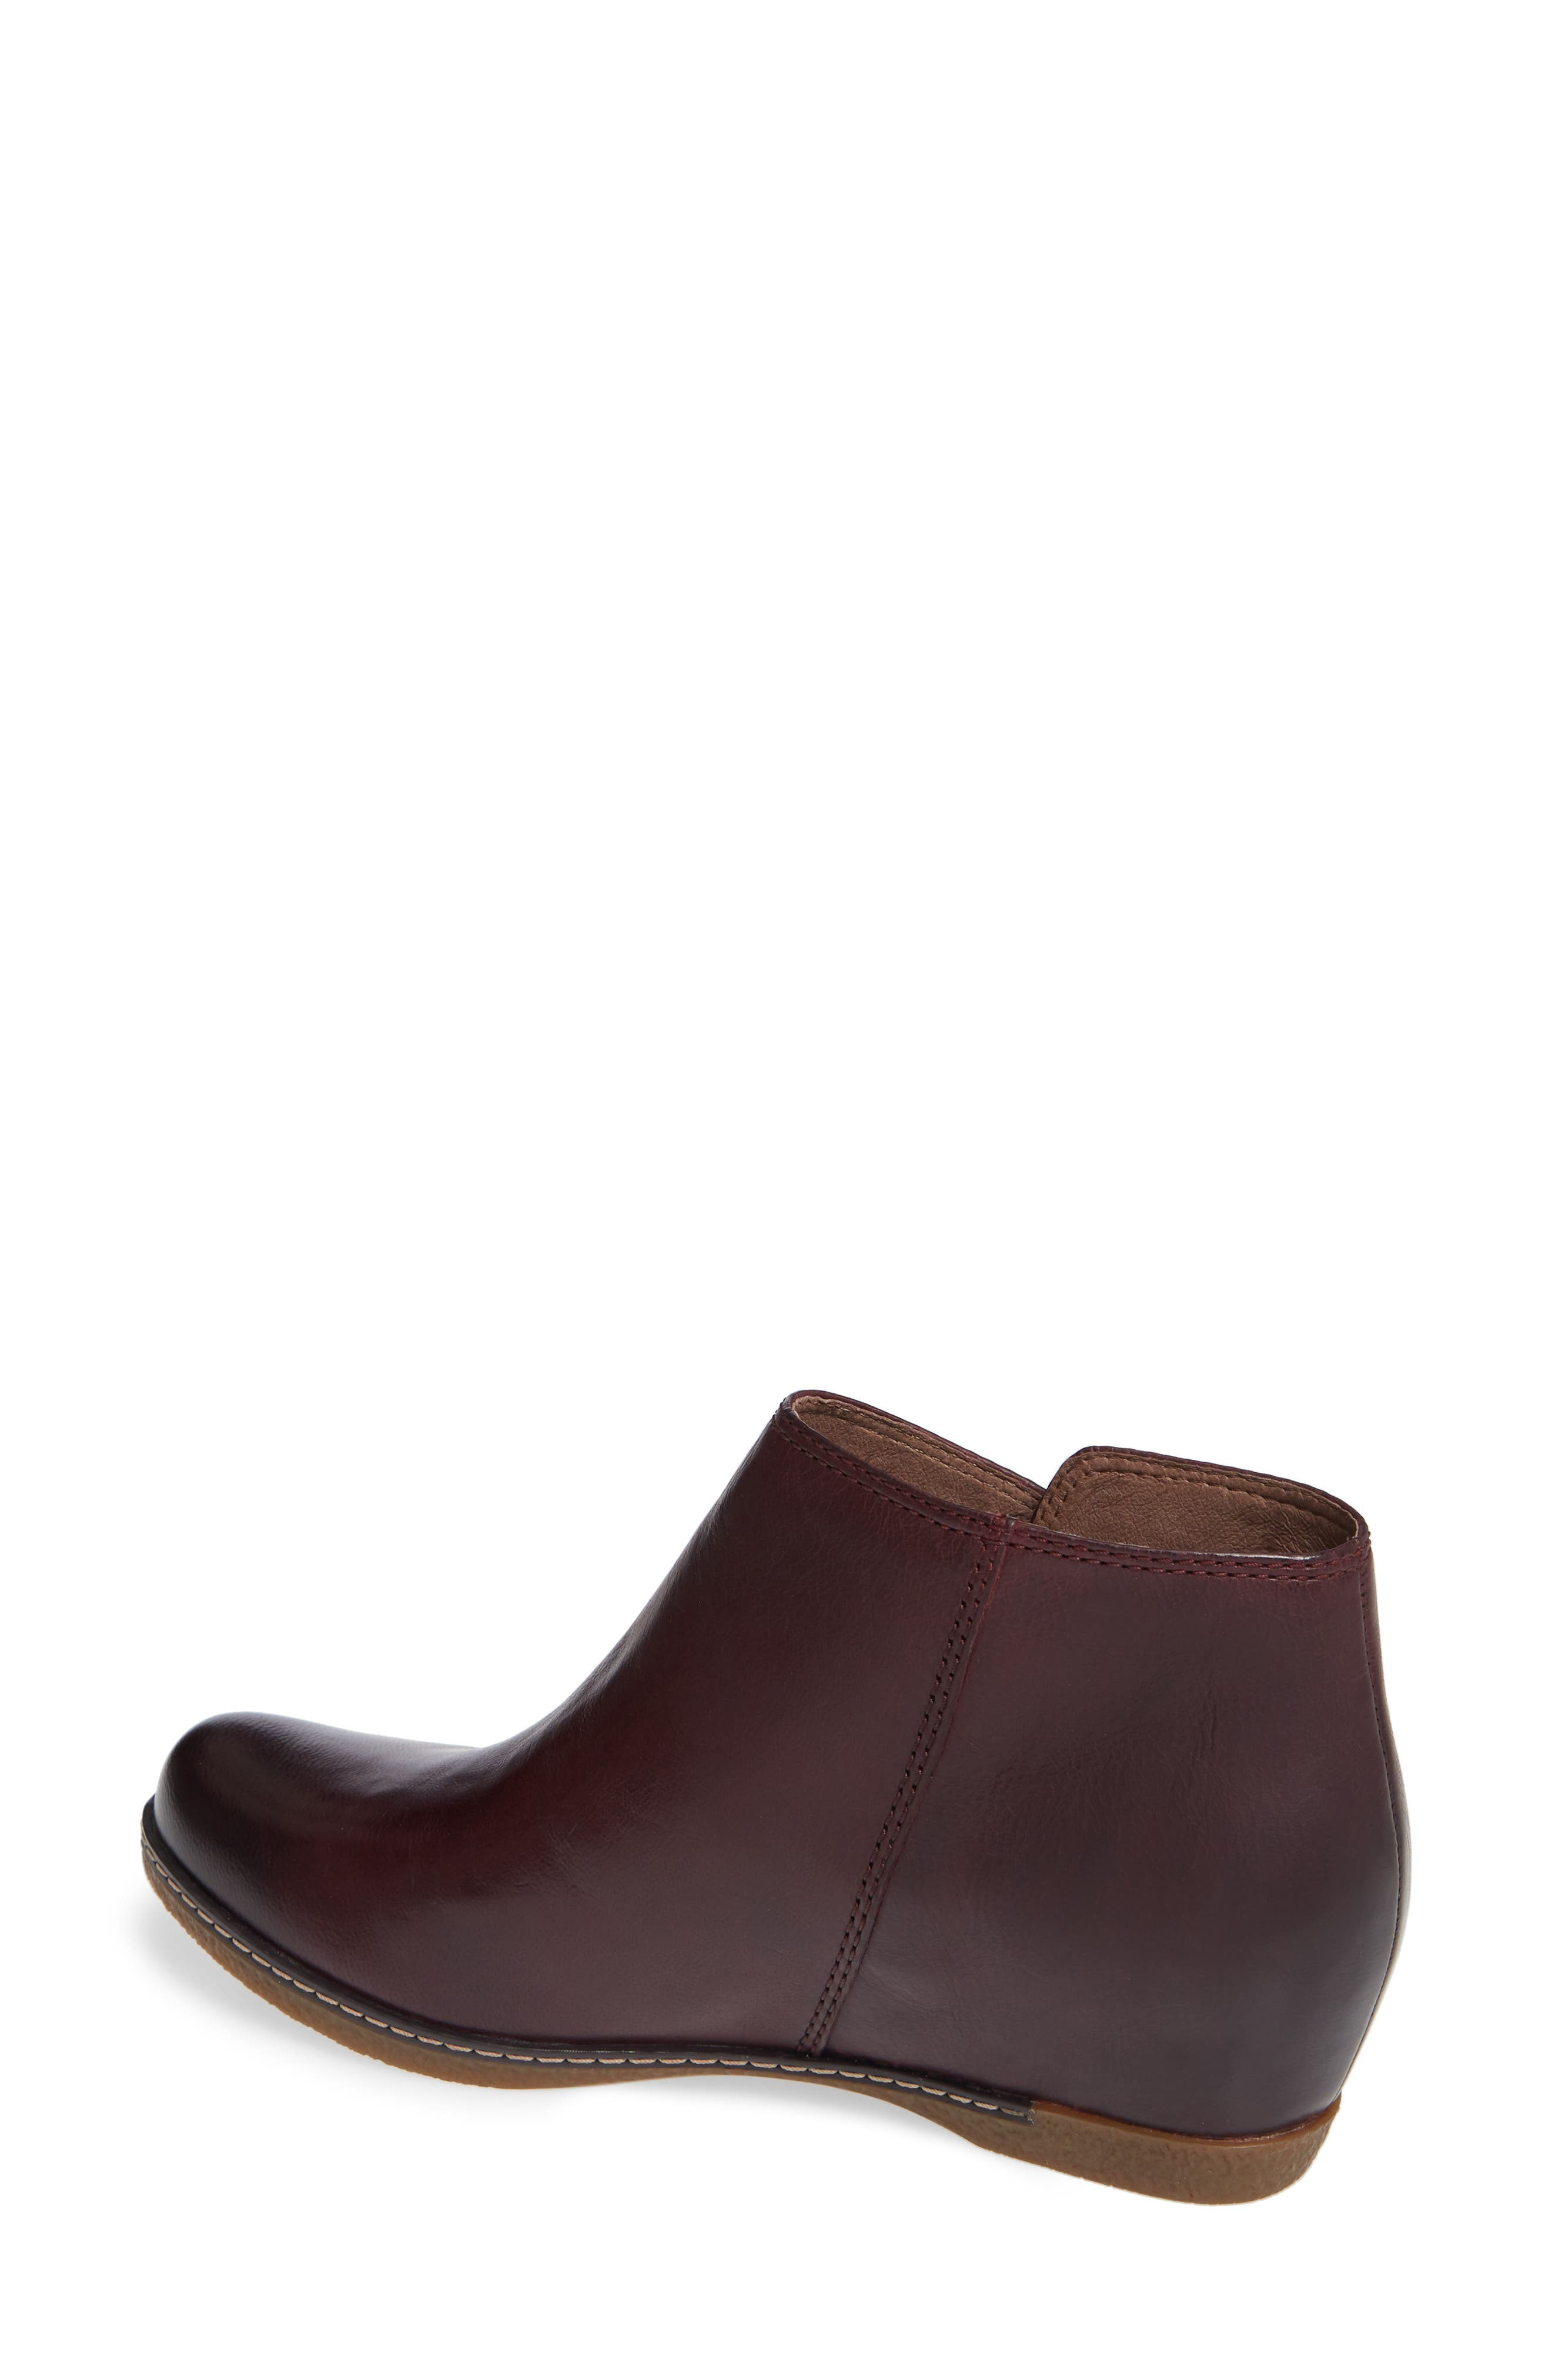 Leyla Bootie,                             Alternate thumbnail 2, color,                             WINE BURNISHED LEATHER